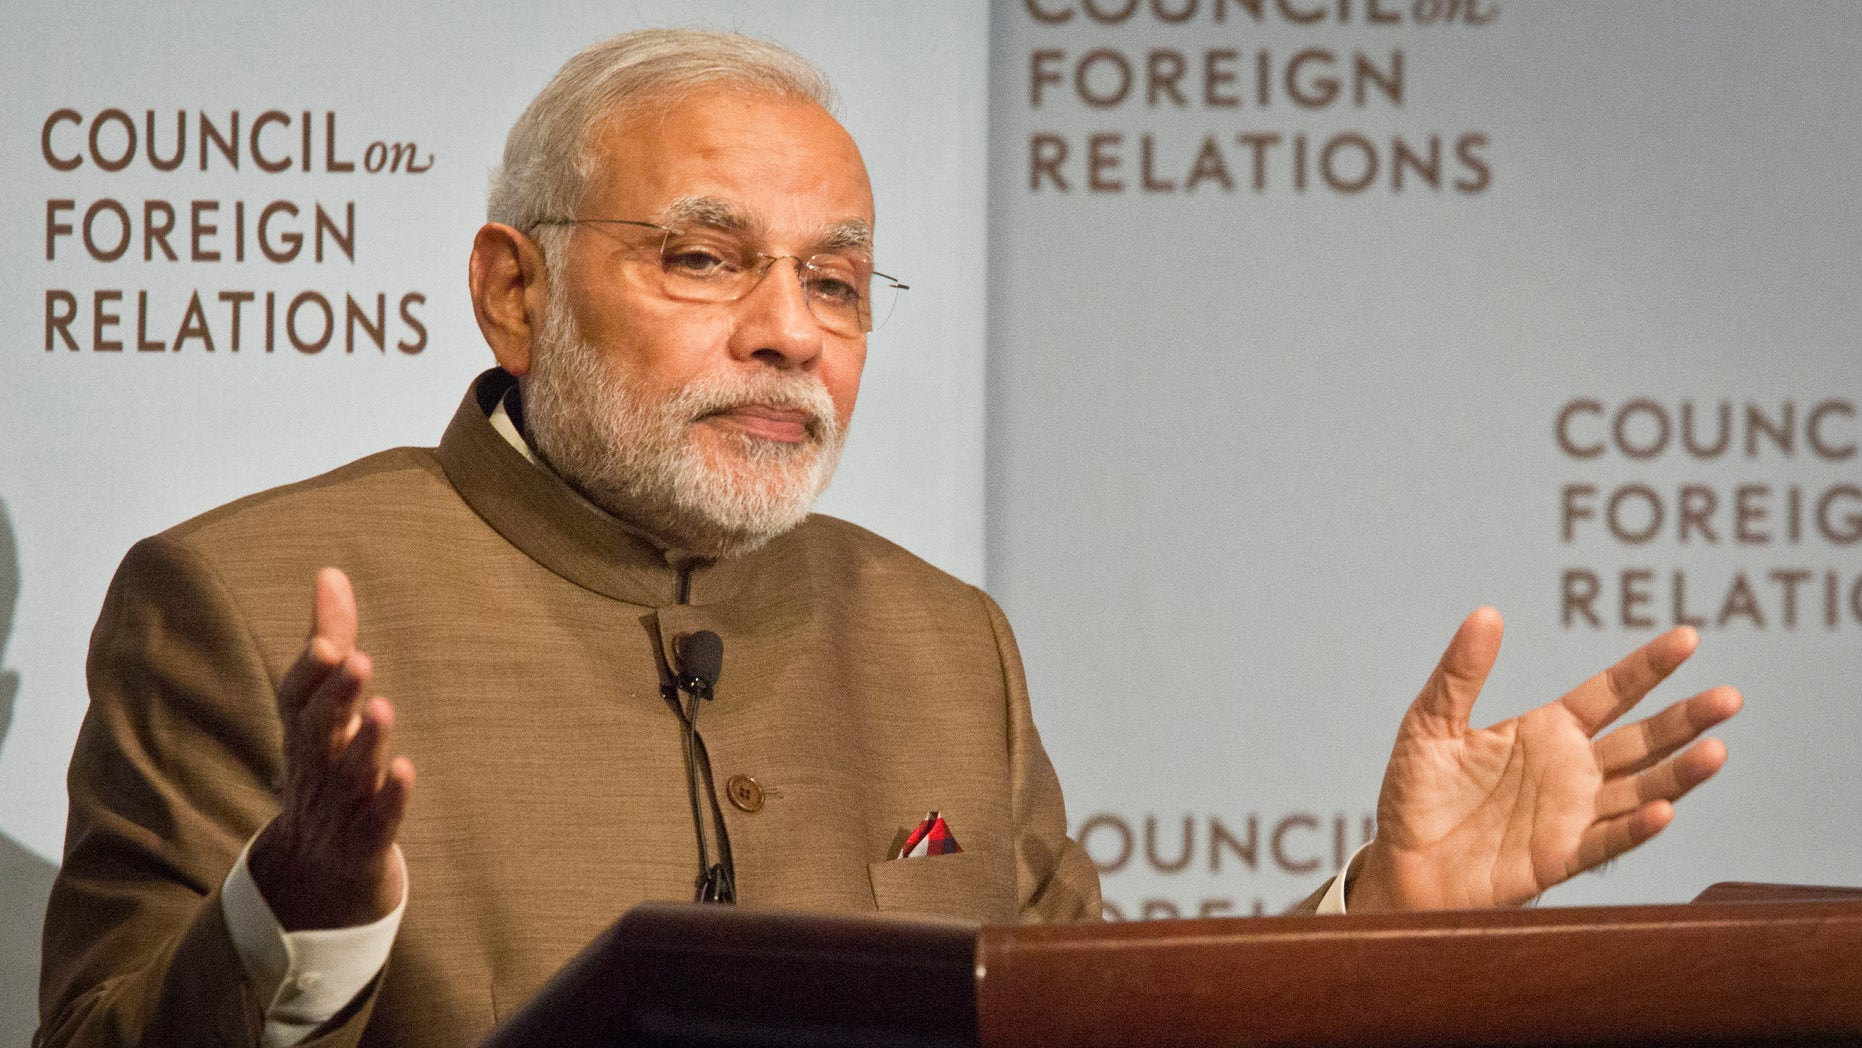 India's Prime Minister Narendra Modi speaks during a press conference at the Council on Foreign Relations, Monday, Sept. 29, 2014 in New York. (AP Photo/Bebeto Matthews)